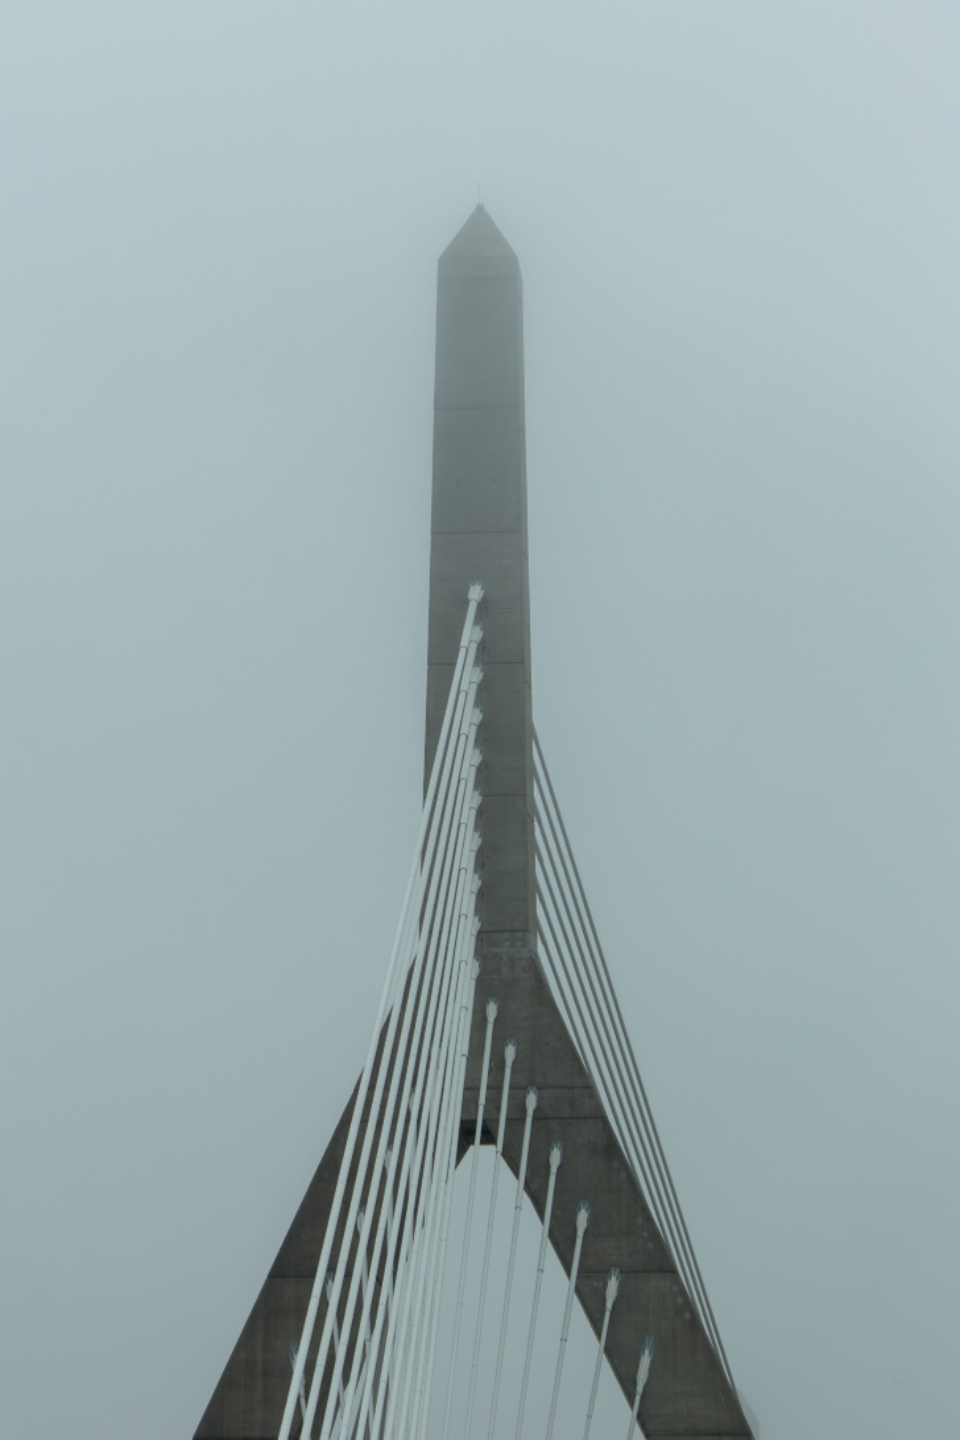 bridge city angle architecture structure modern cable lines tower sky clouds design fog weather misty abstract moody